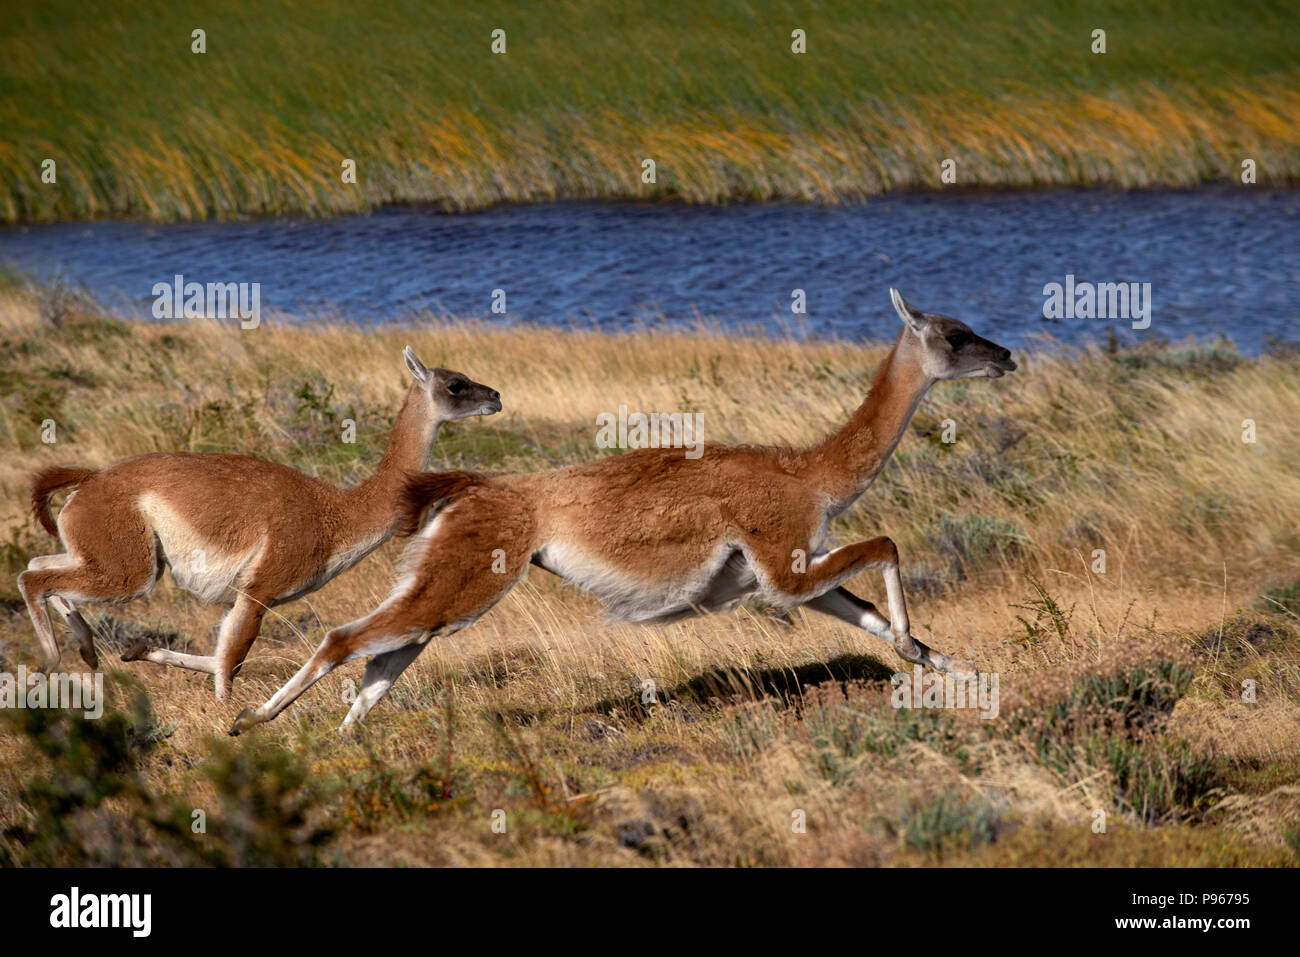 2 adult guanaco fleeing in panic after spotting a Patagonian Puma stalking the herd they were part of - Stock Image